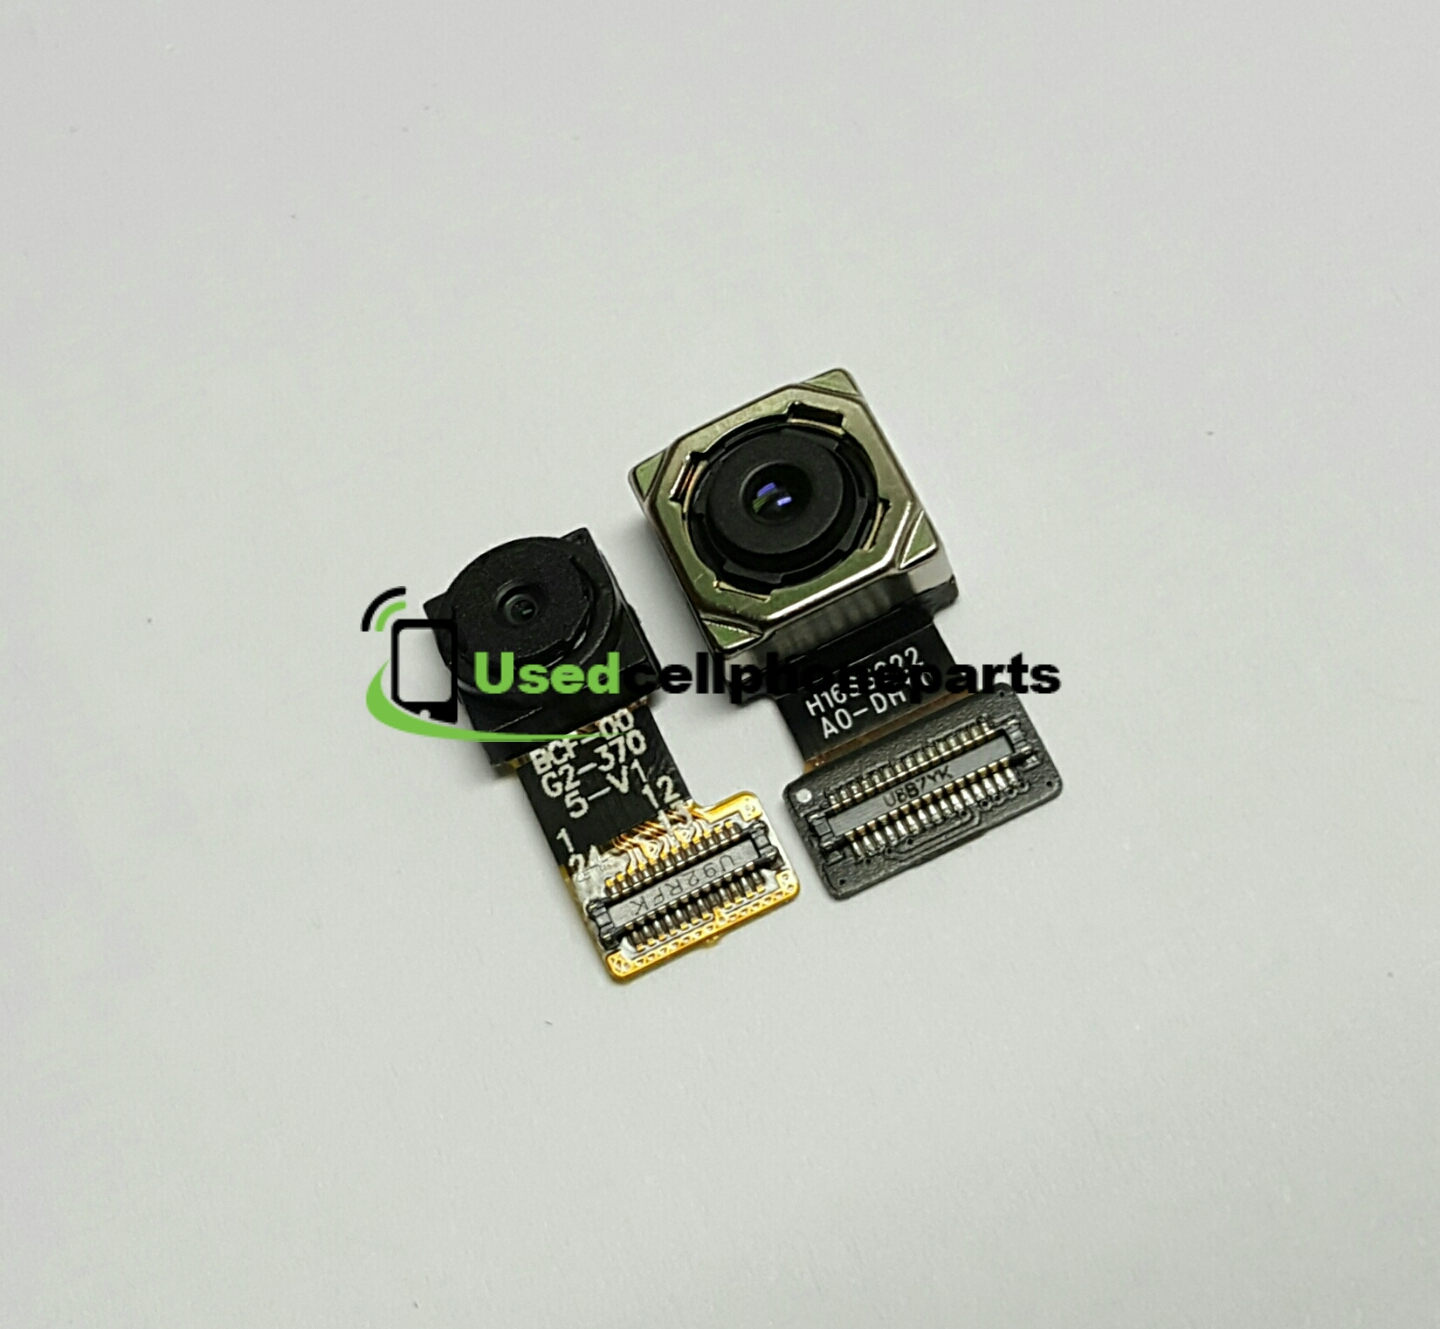 Original OEM Metropcs Coolpad CP3705A Legacy Rear Camera